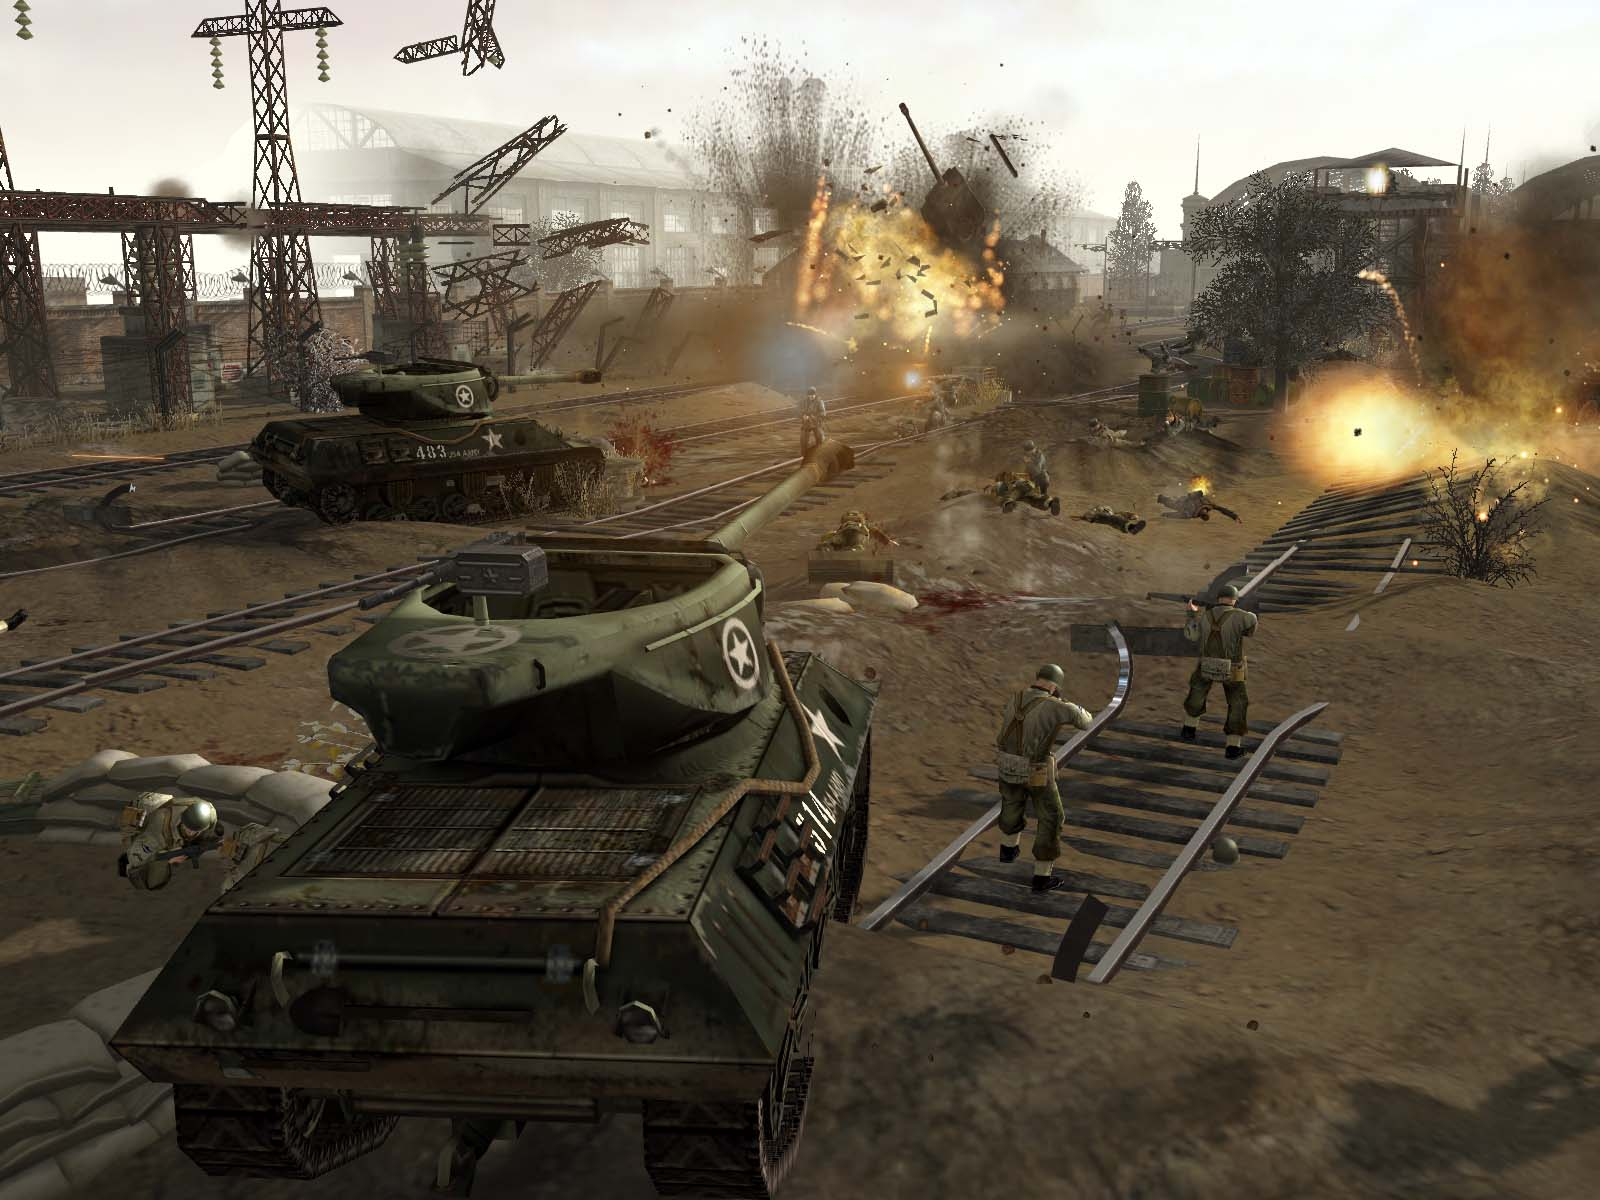 http://www.rockpapershotgun.com/images/jan08/Men_of_War4.jpg